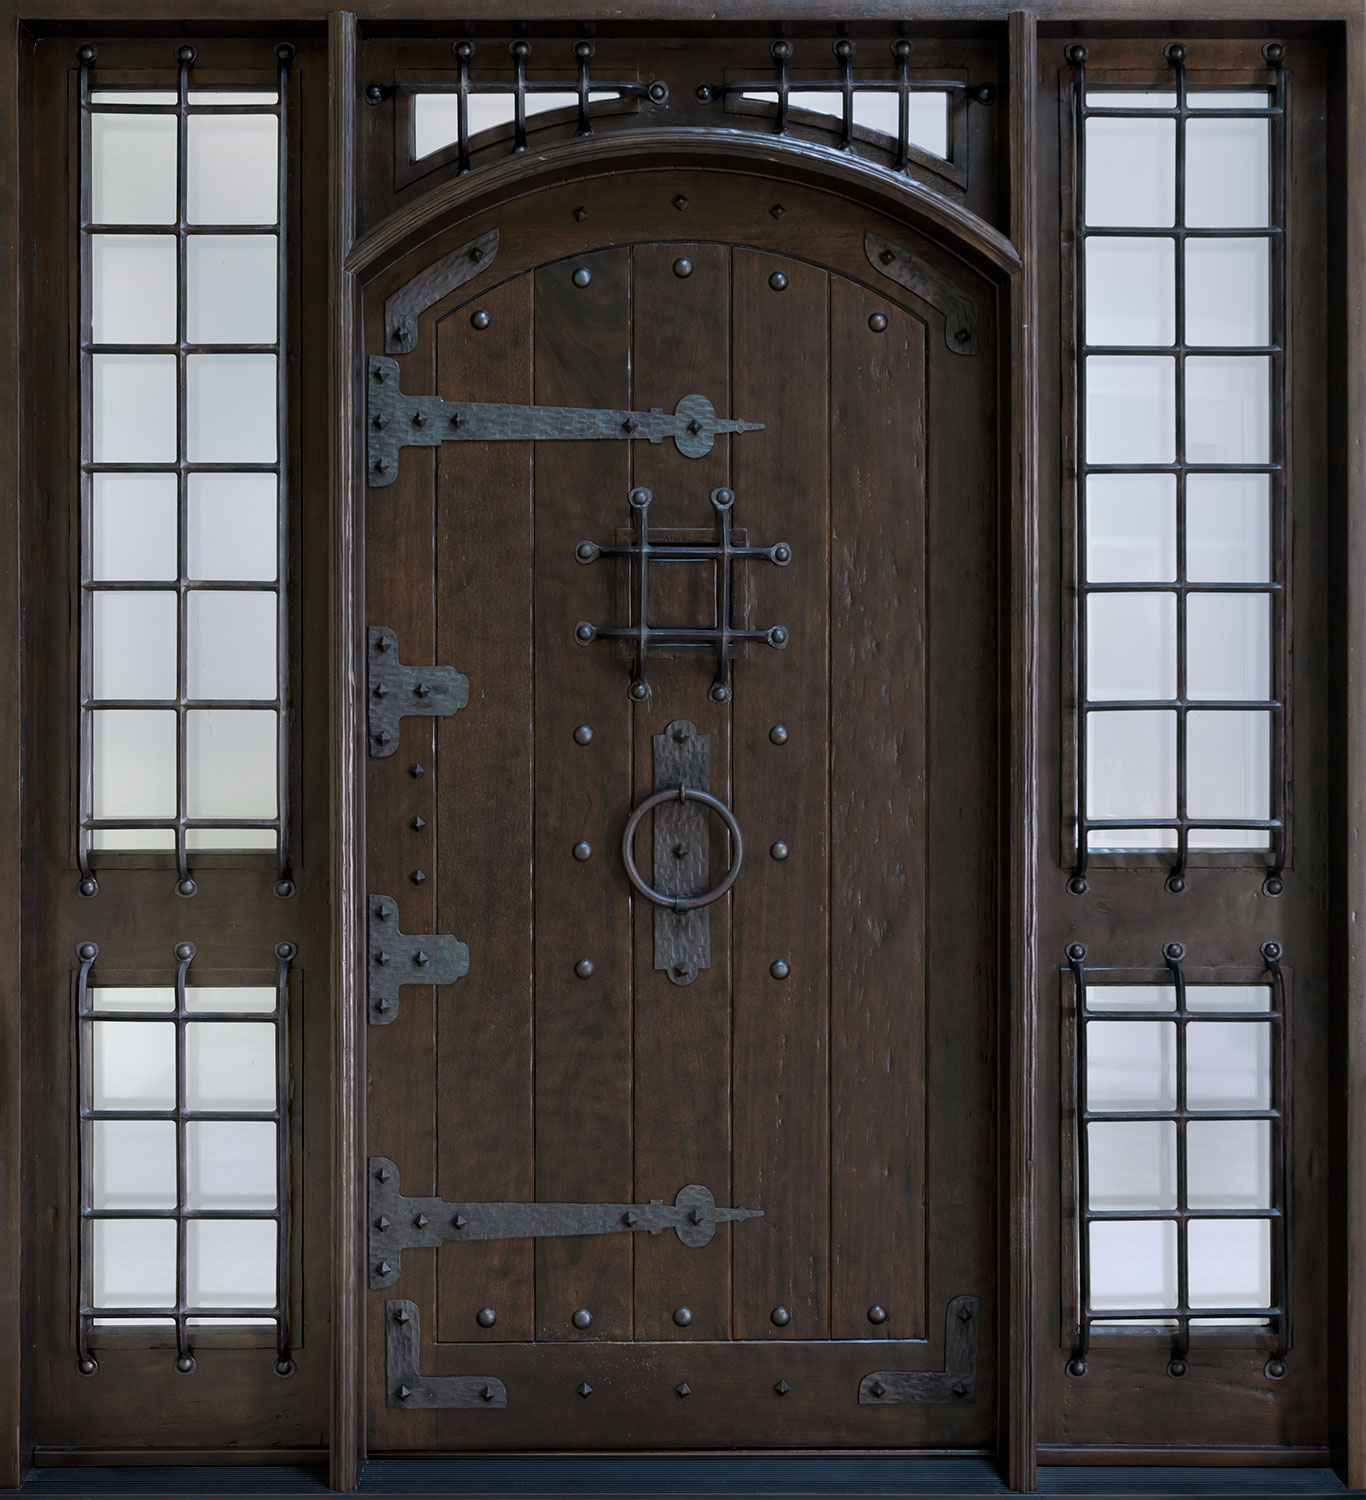 interior-gorgeous-steel-entry-doors-design-with-twin-bay-windows-and-dark-stell-door-in-the-center-likeable-steel-entry-doors-designs-will-make-your-home-safety